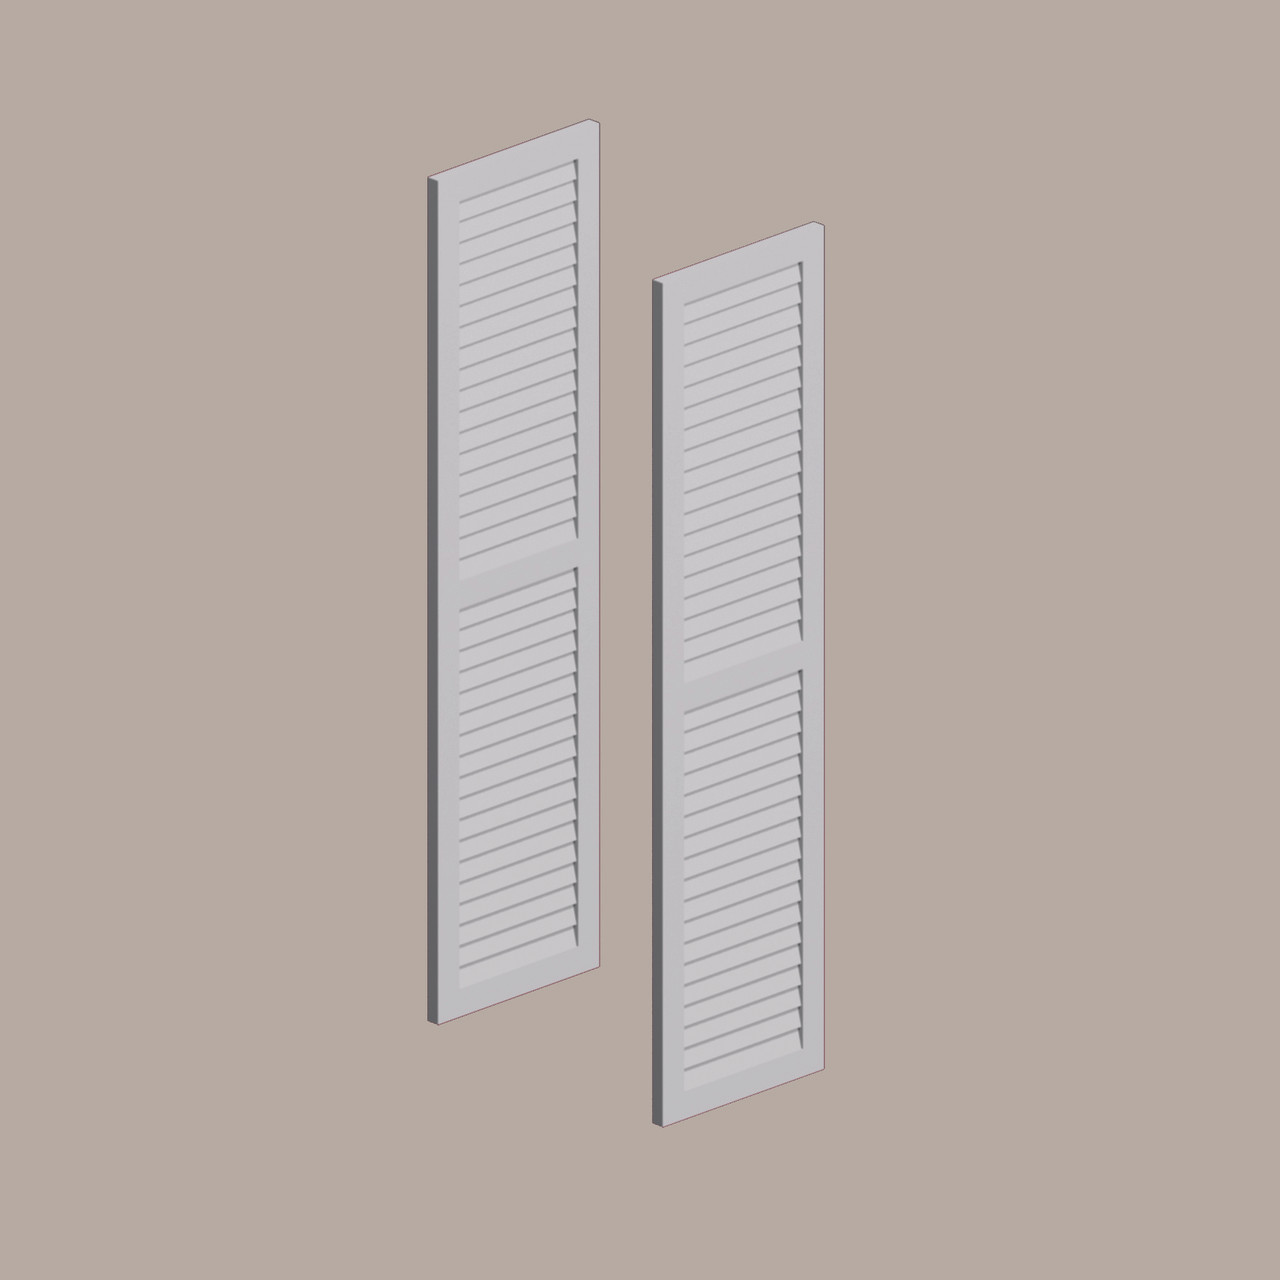 Fypon shutter___LVSH24X66FNCR___SHUTTER LOUVERED W/ CENTER RAIL 24X66X1 SMOOTH